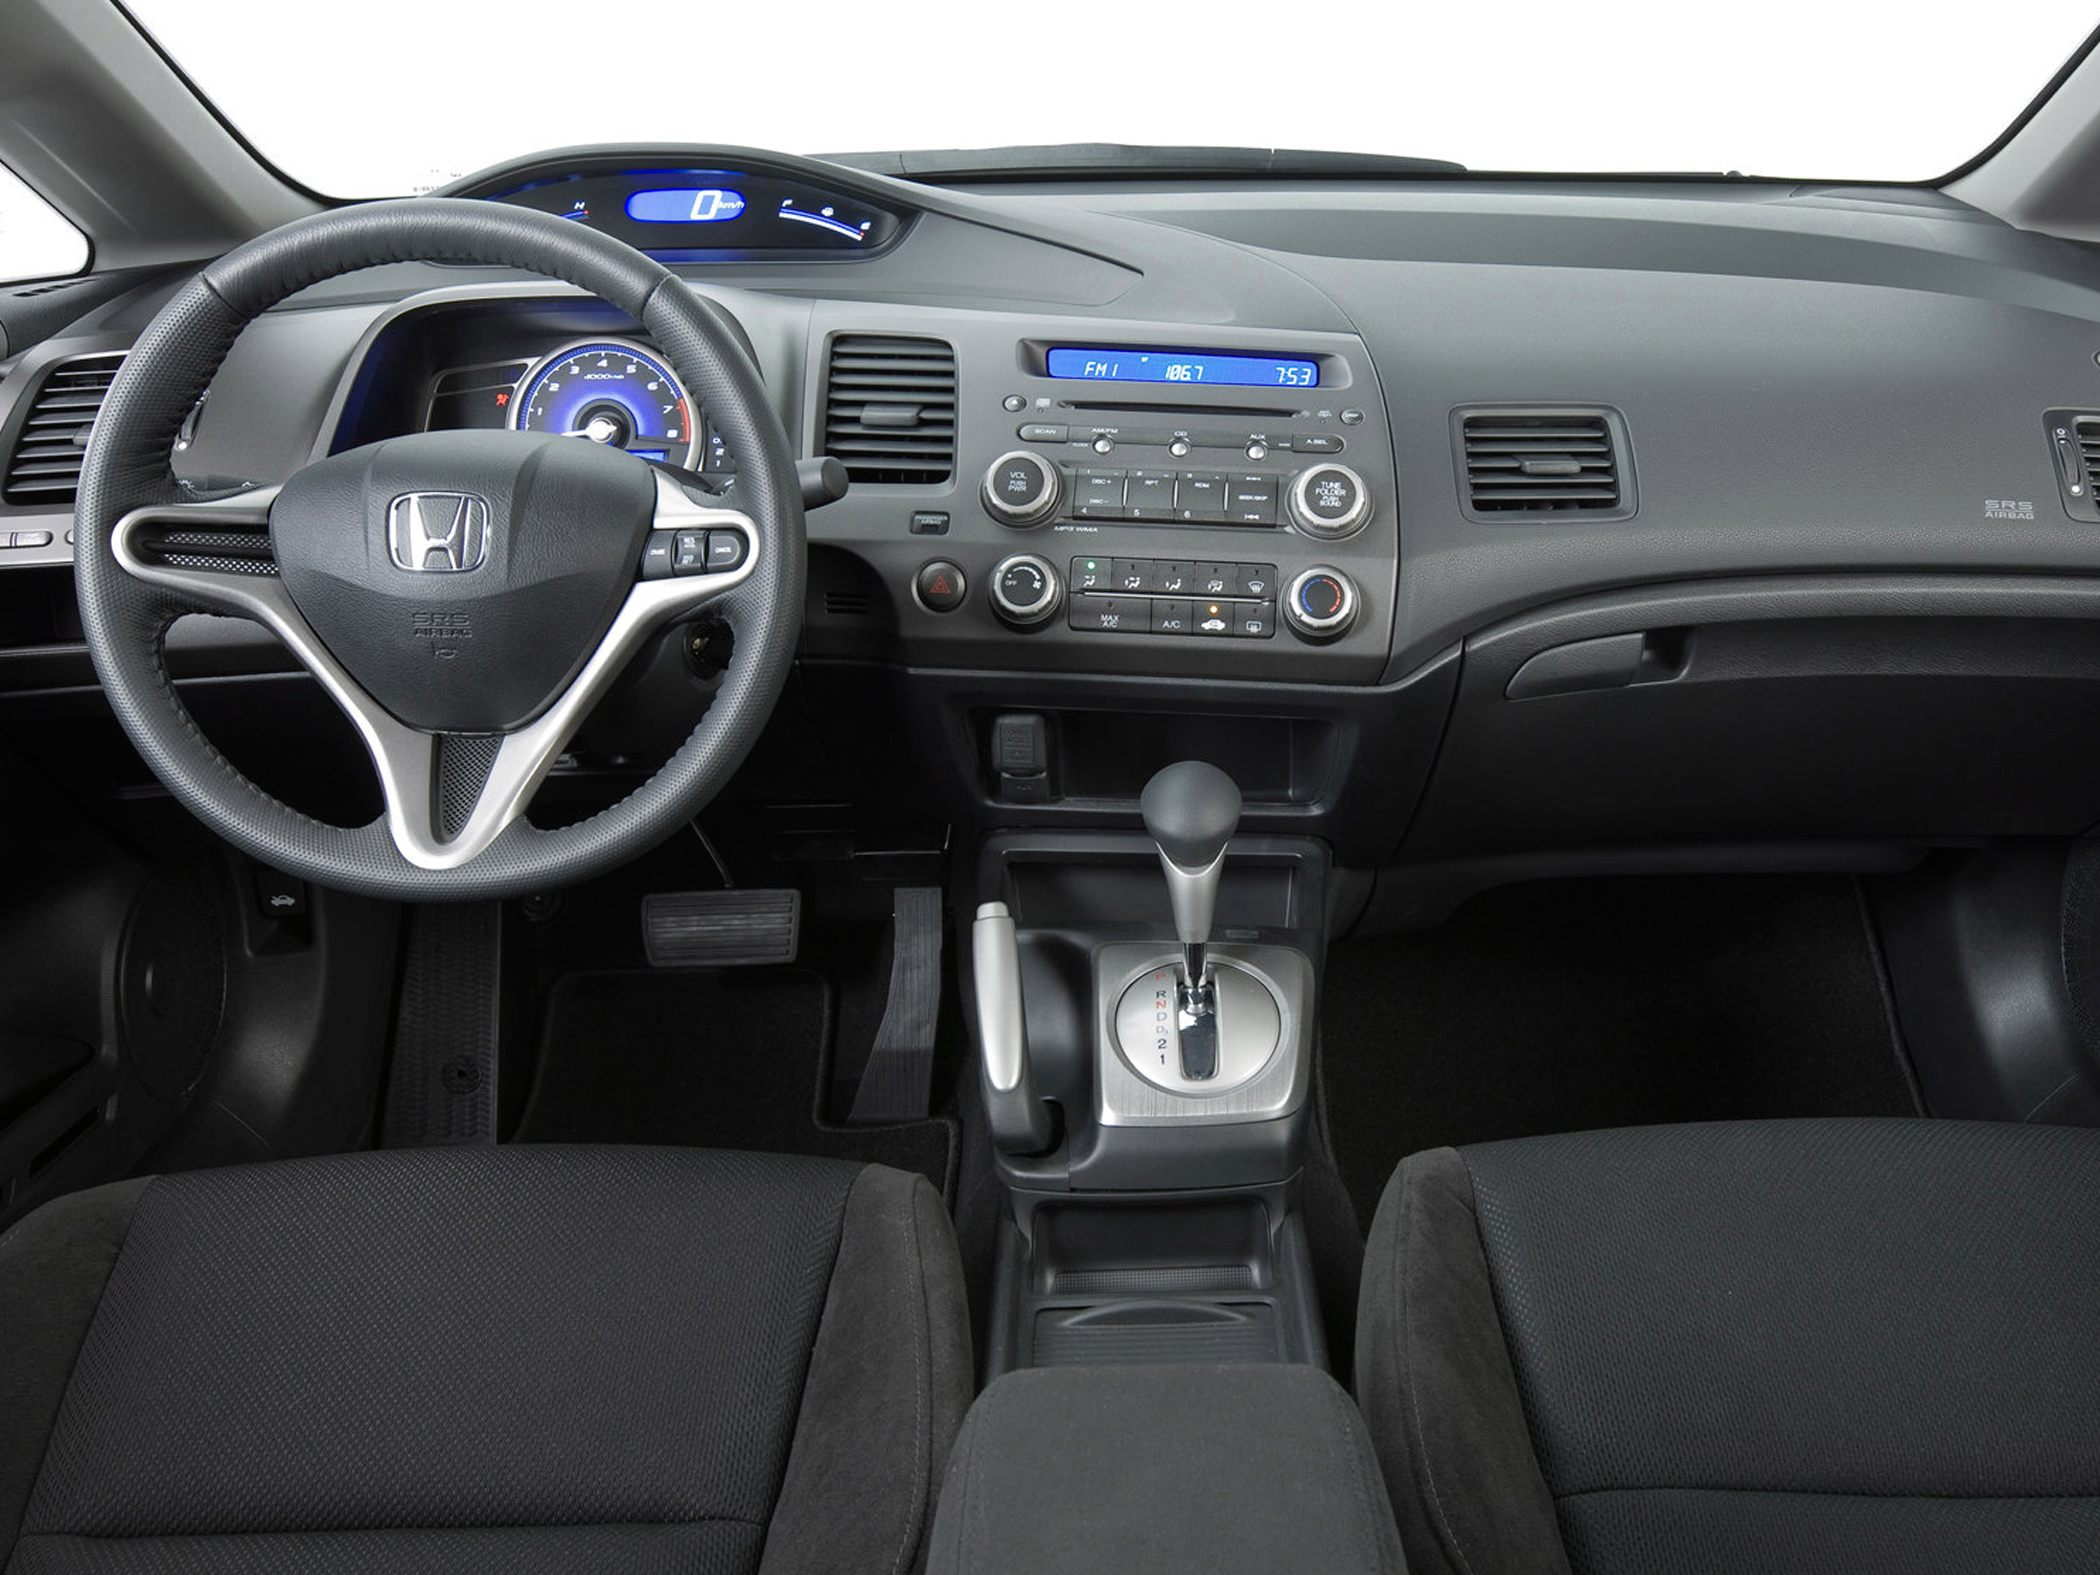 Honda Civic 2011 #8